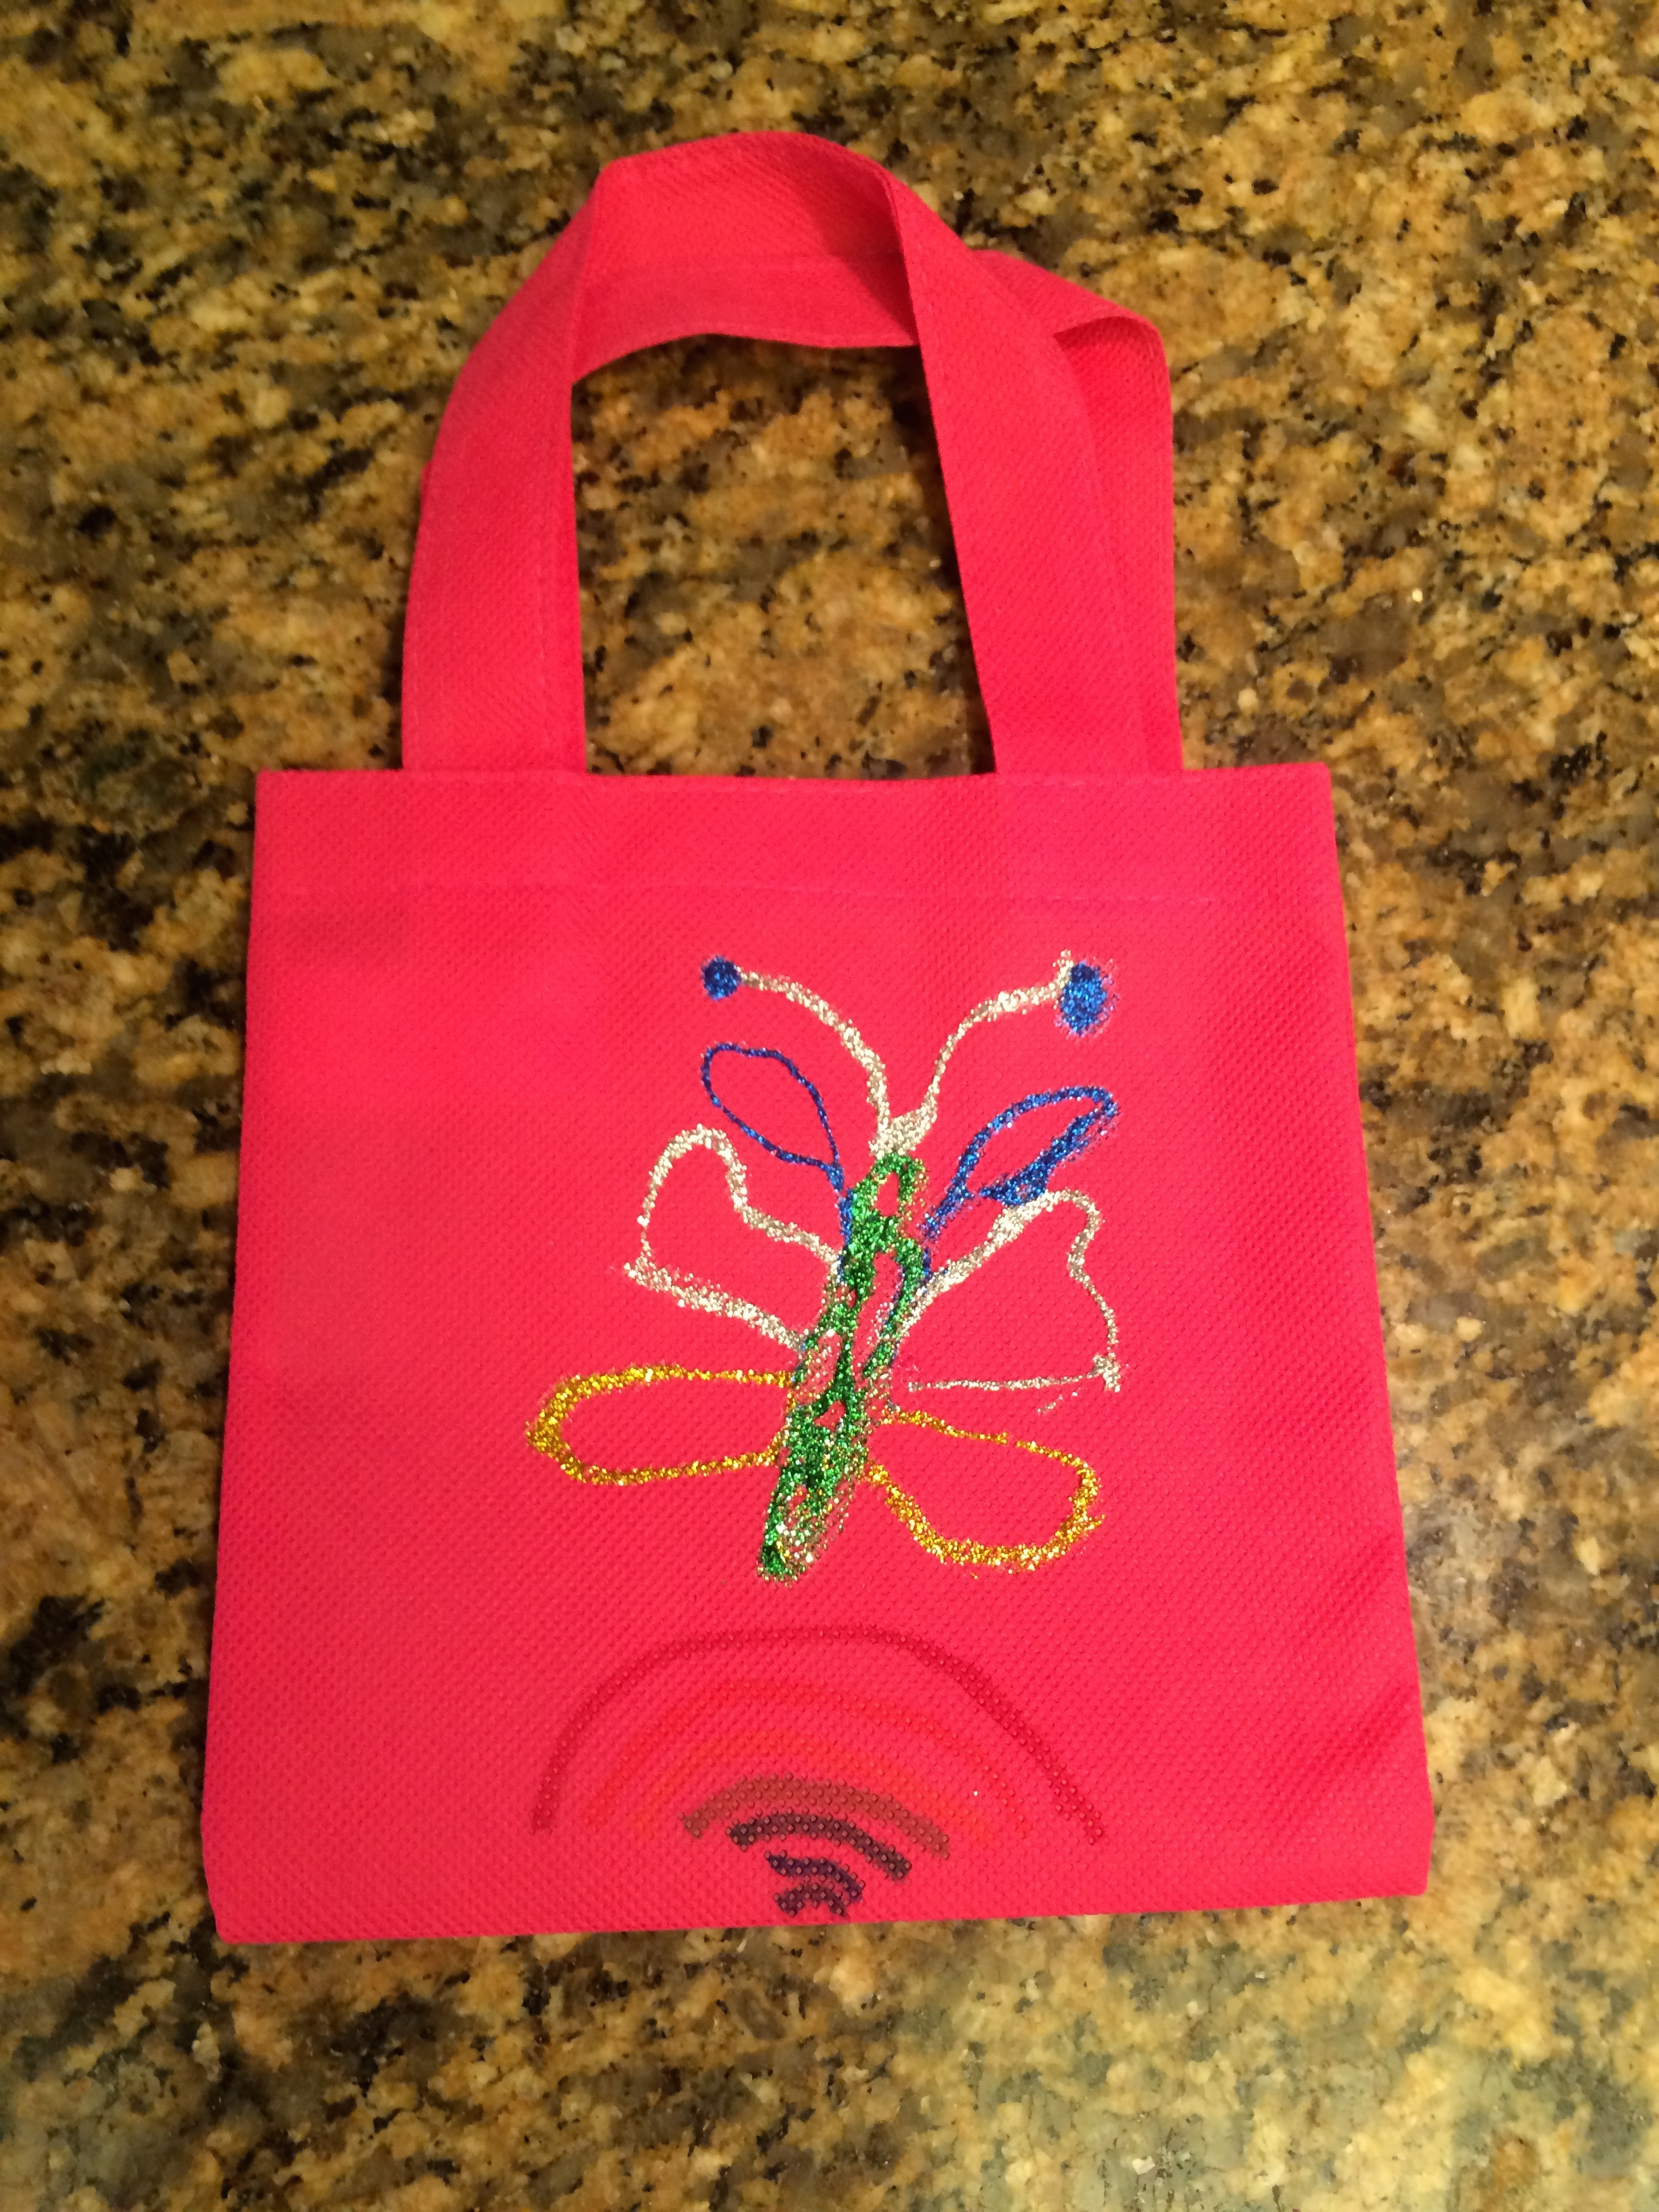 d2401b8a265c My 9-year-old stuck with the butterfly theme for her party favor bag